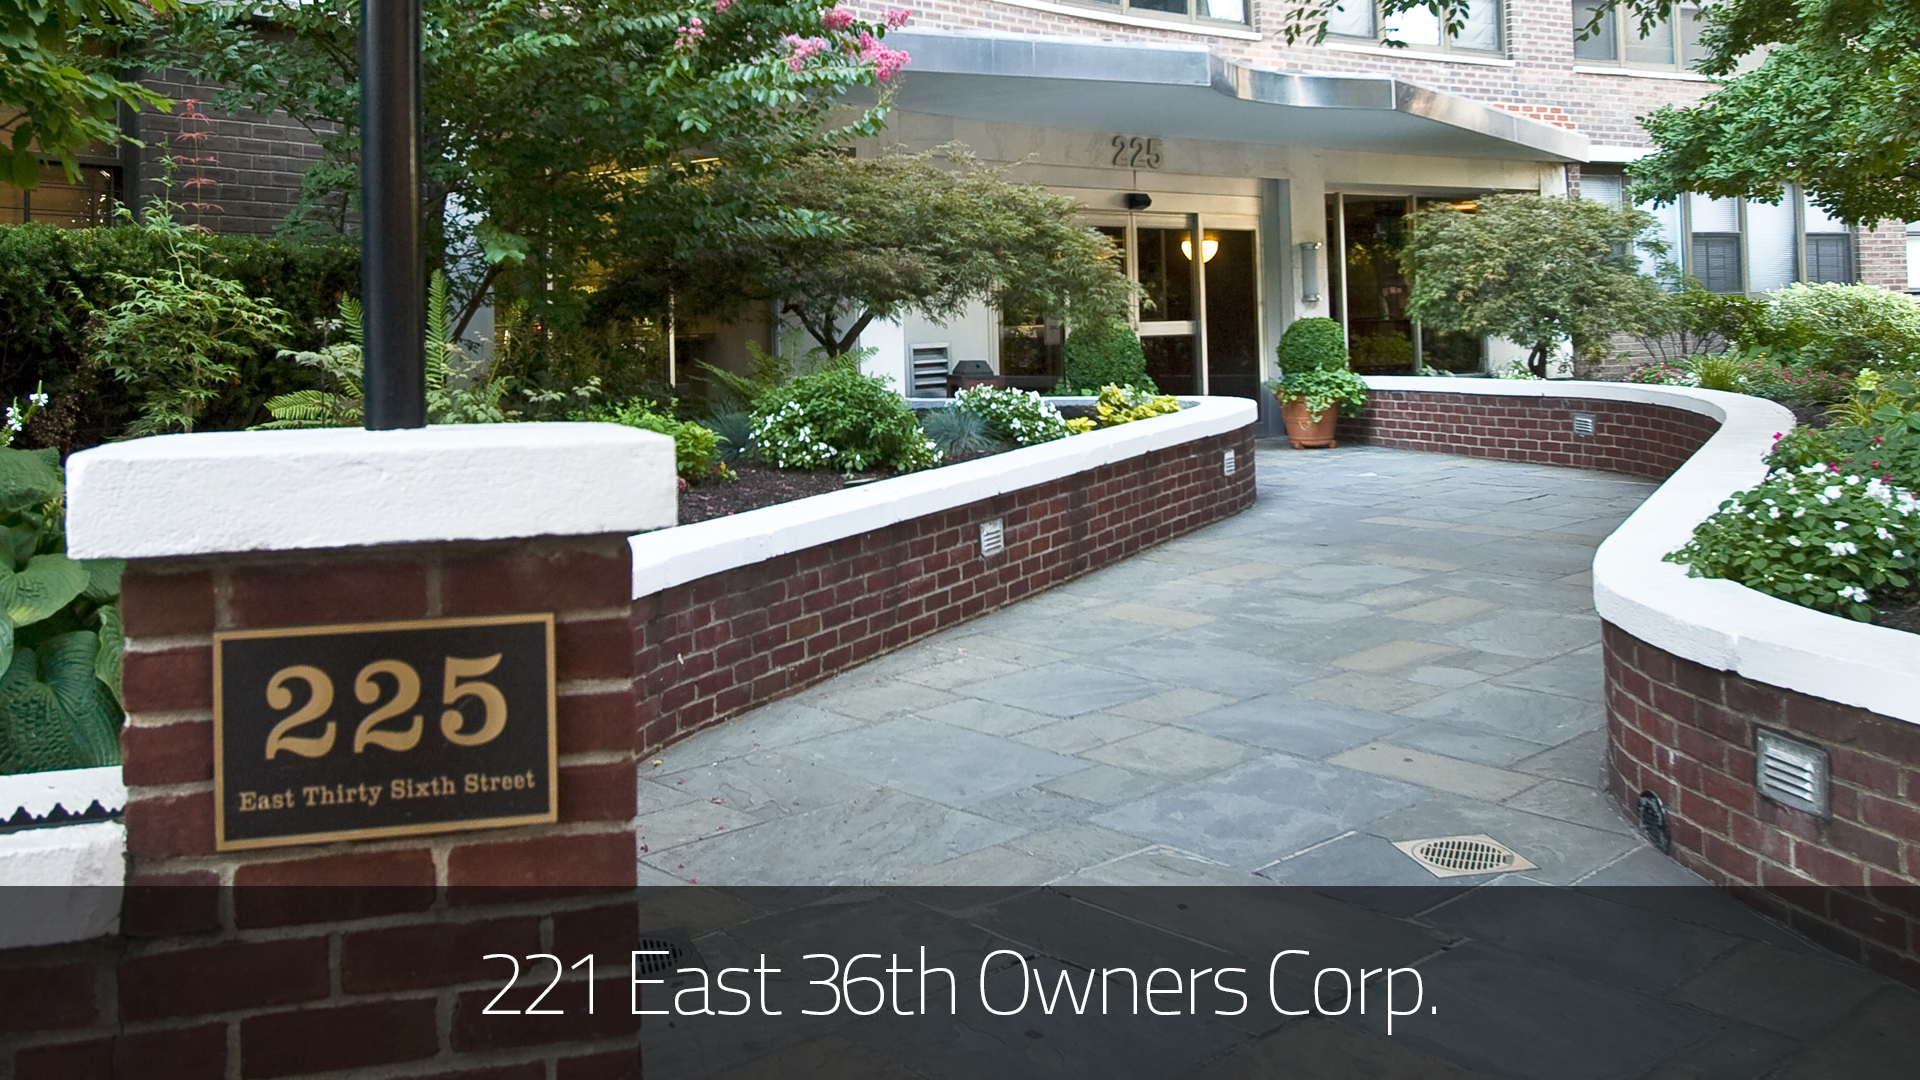 221 east 36th owners corp